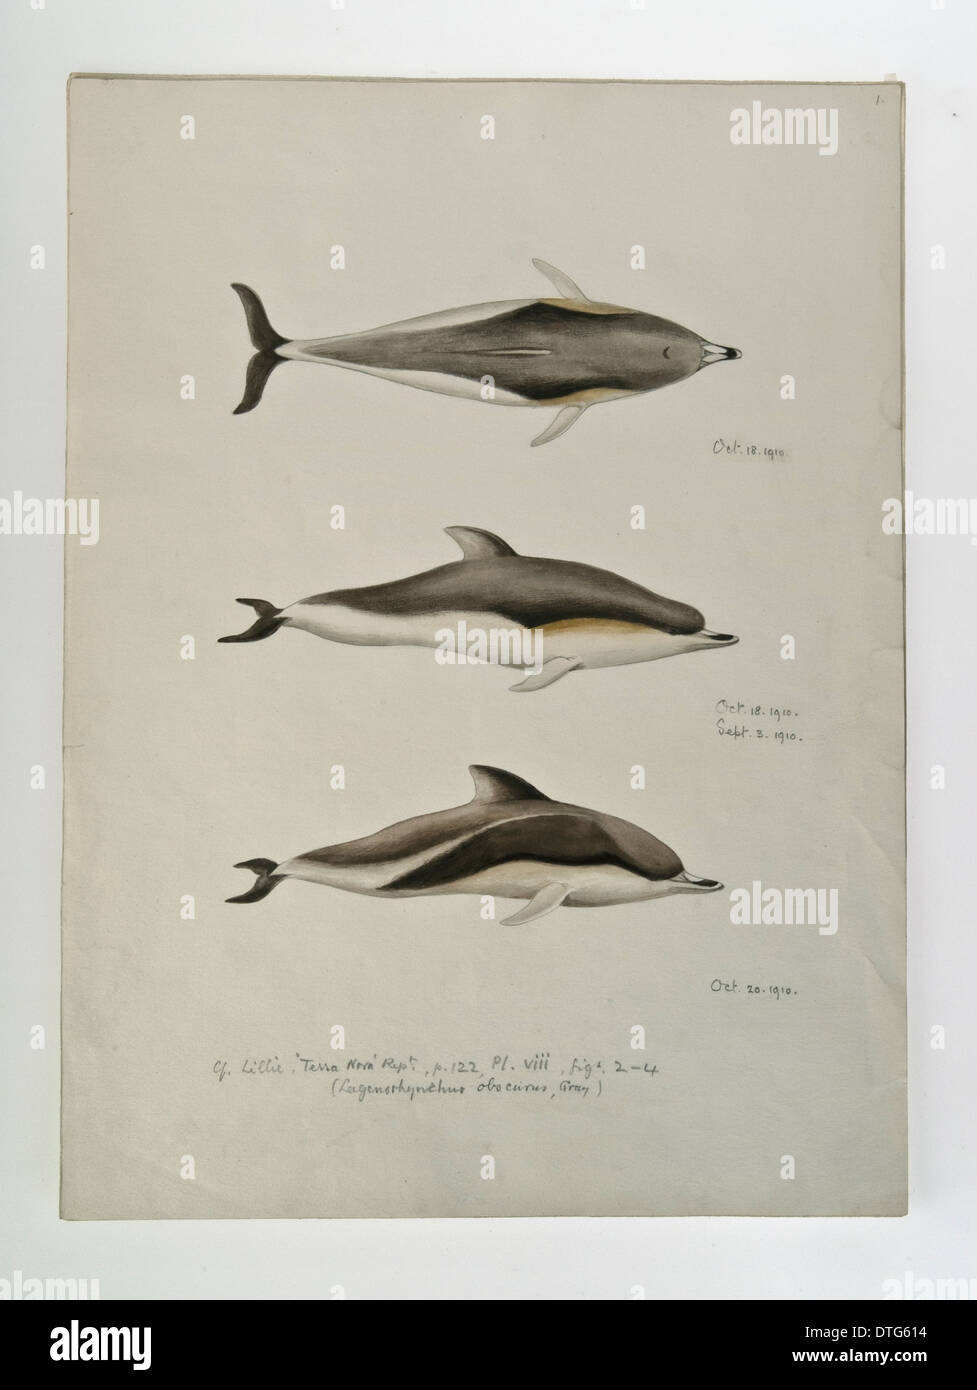 Sketch of Dolphins by Edward Wilson - Stock Image